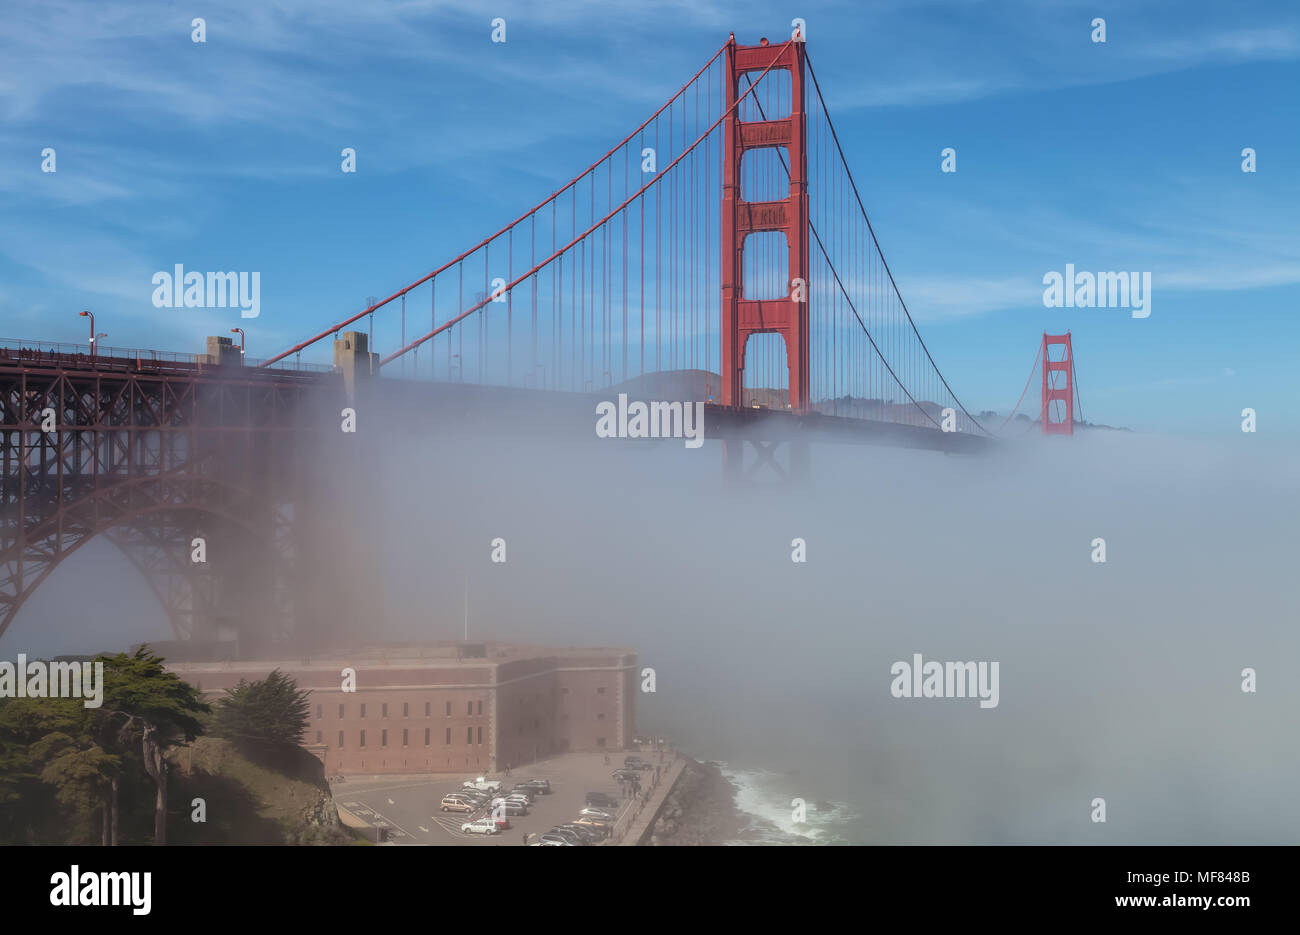 The historic Fort Point at the Golden Gate Bridge amid the dense fog on an early spring morning in San Francisco, California, United States. - Stock Image